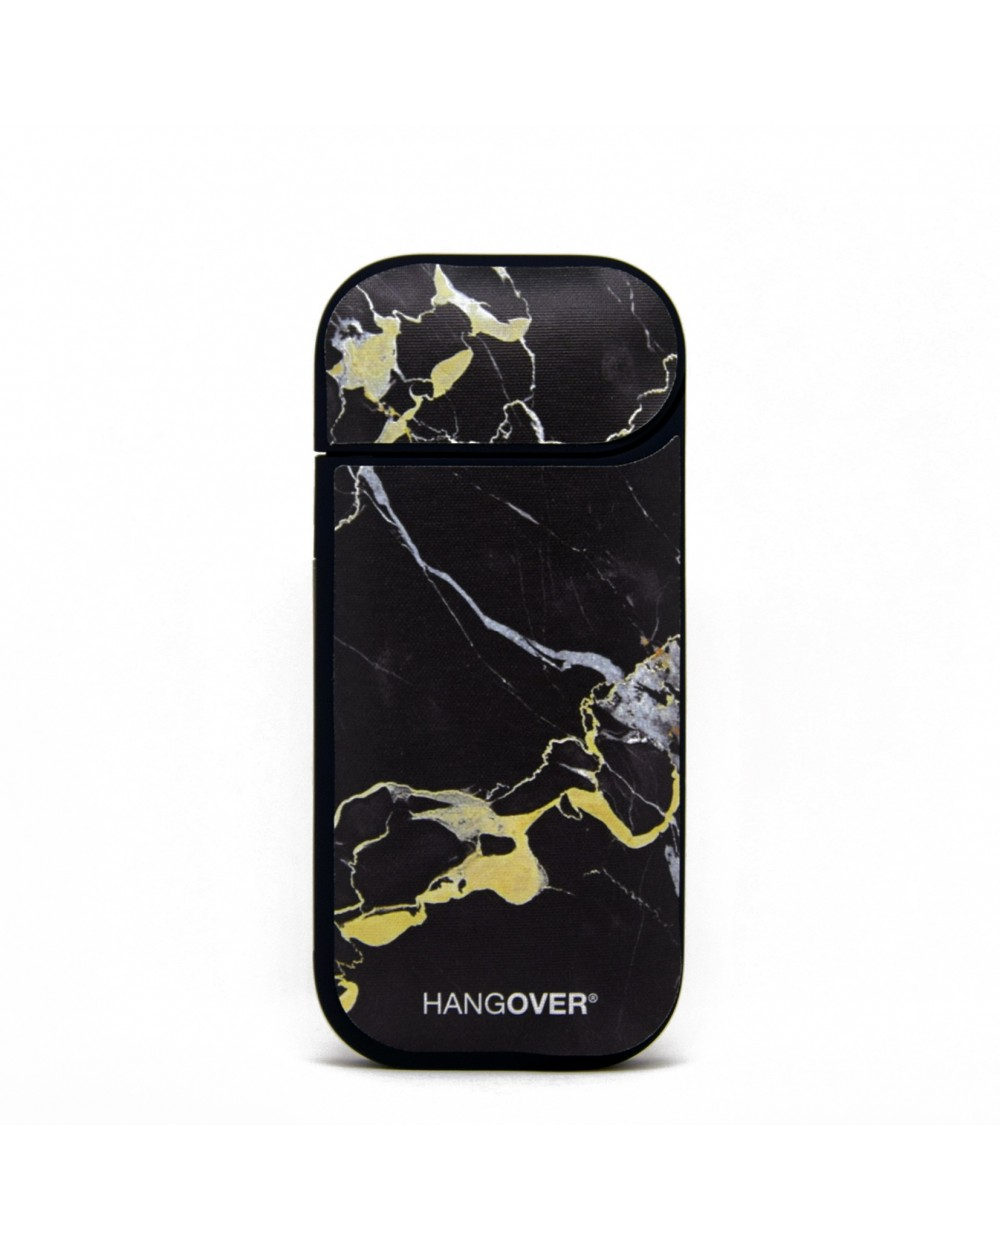 Marble Black - Cover SmartSkin in Tessuto Speciale for Iqos 2.4 e 2.4+ by Hangover